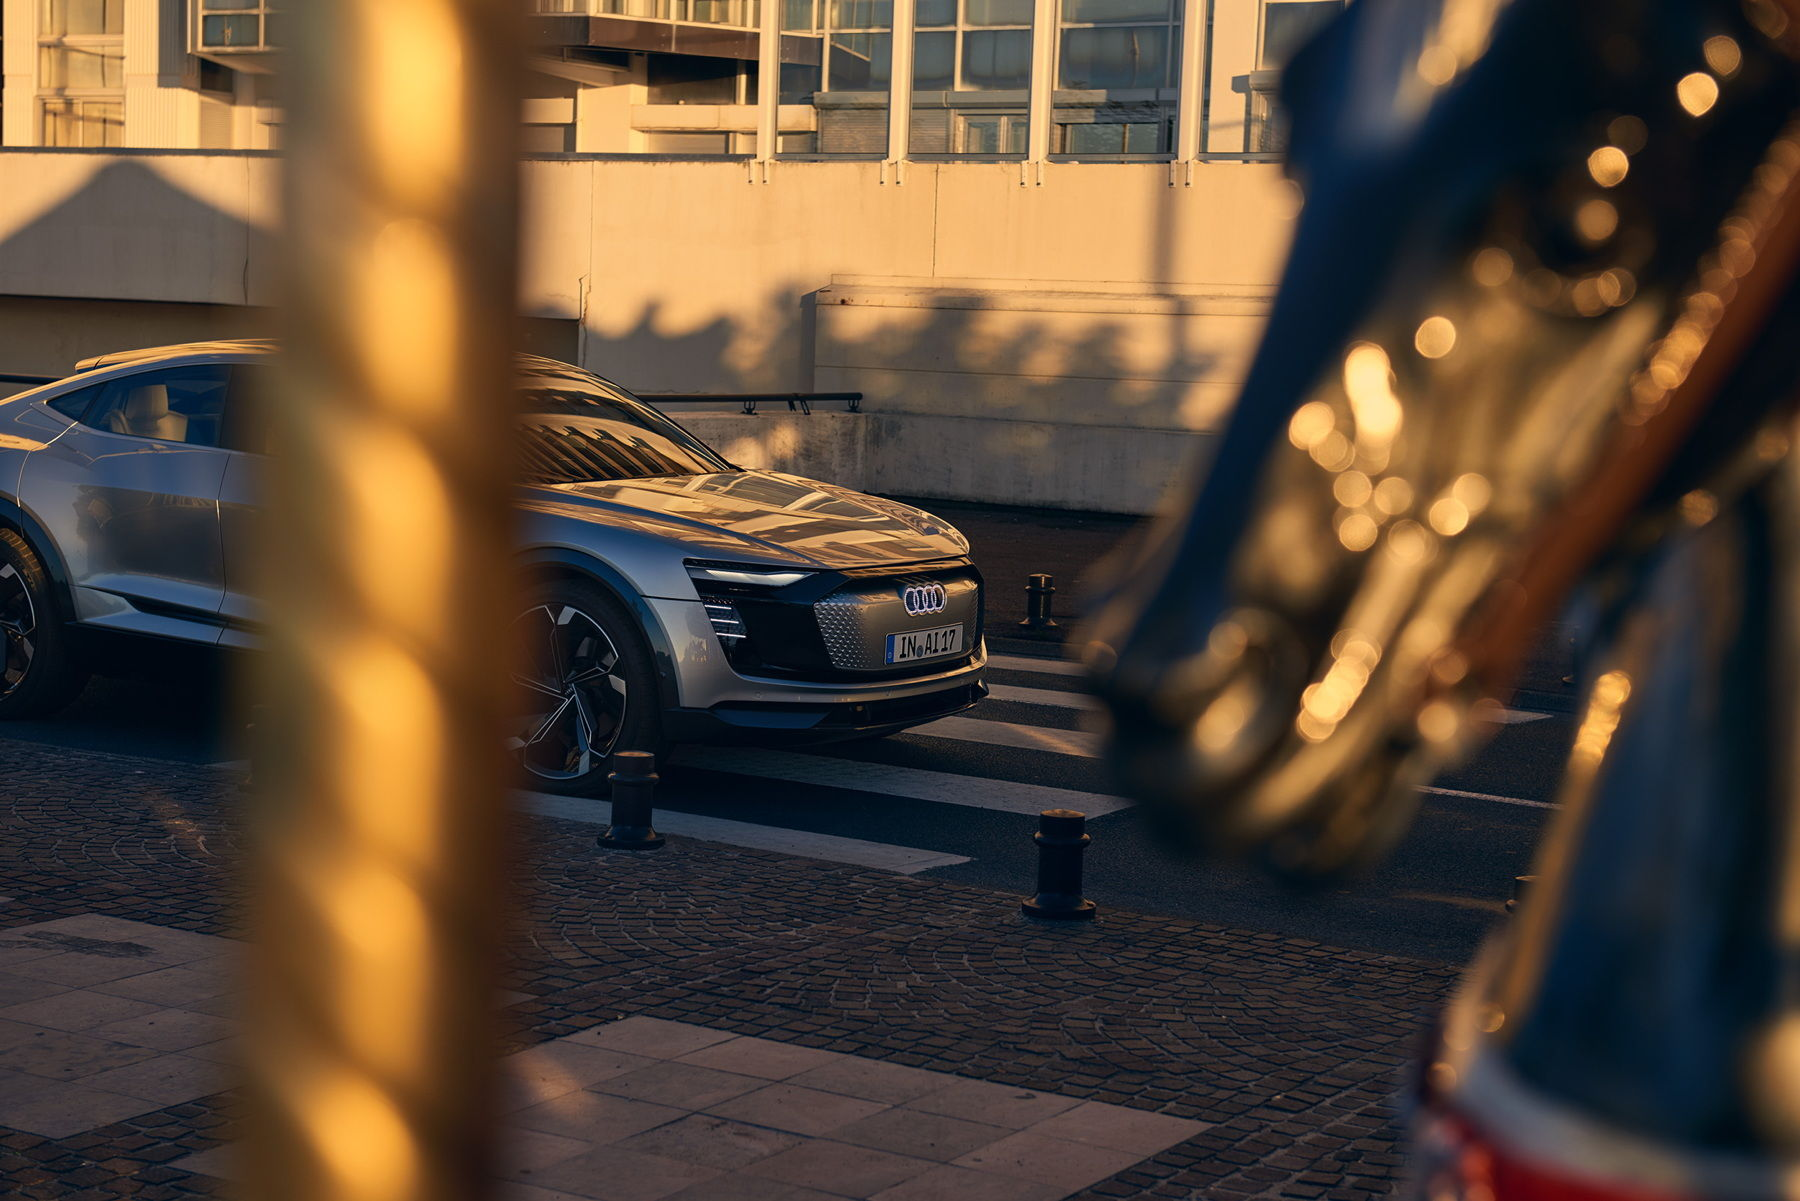 SONDA PRODUCTIONS: Jan Friese for Audi e-tron